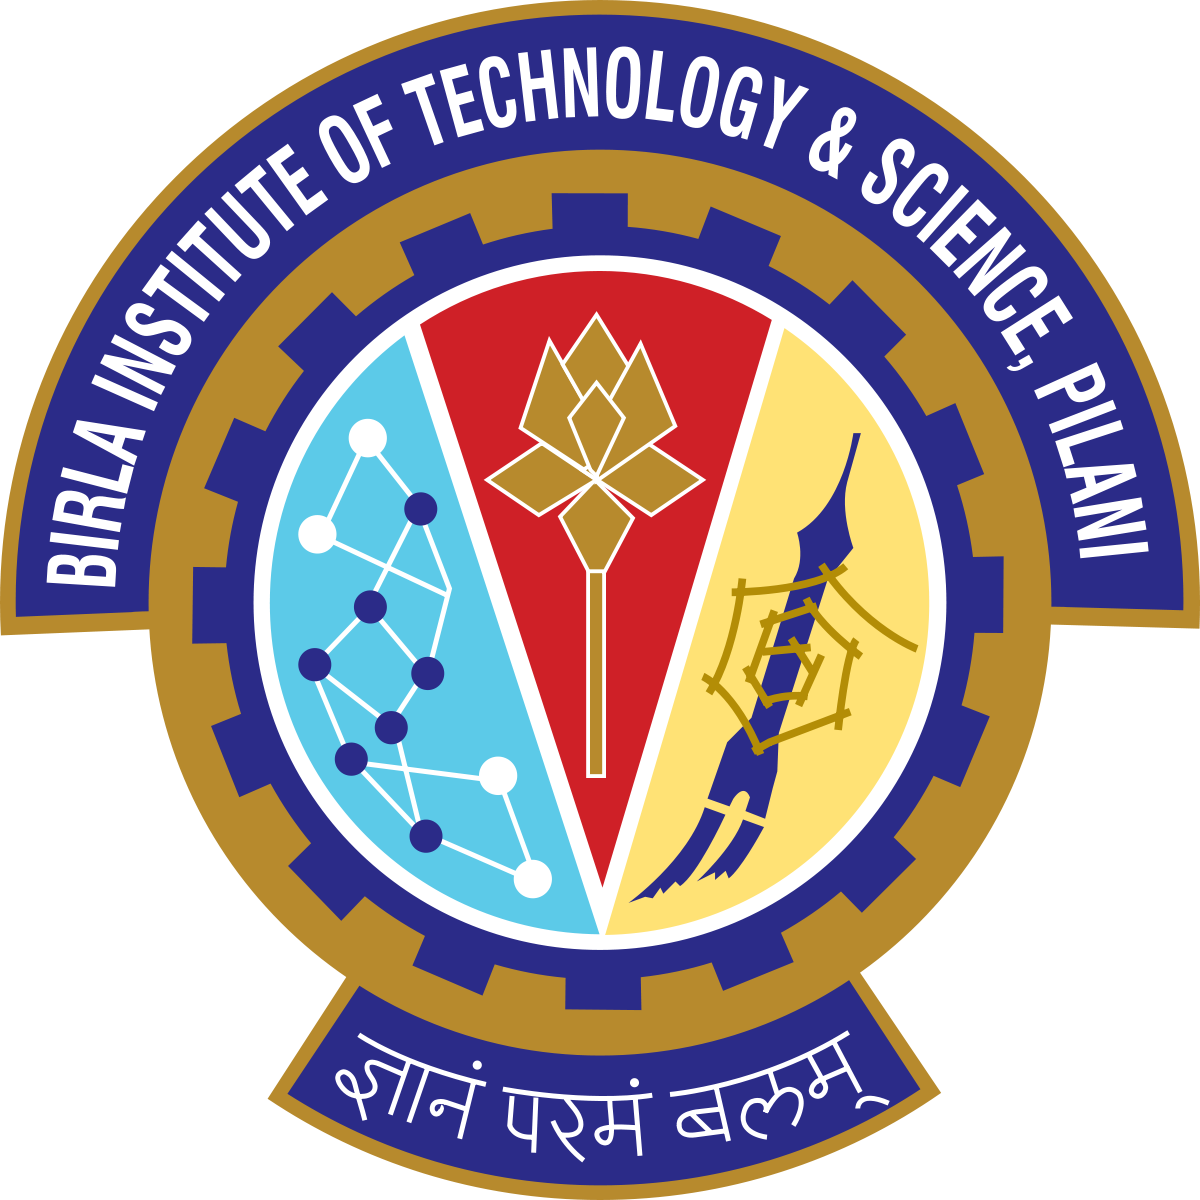 Birla Institute of Technology and Science Pilani logo